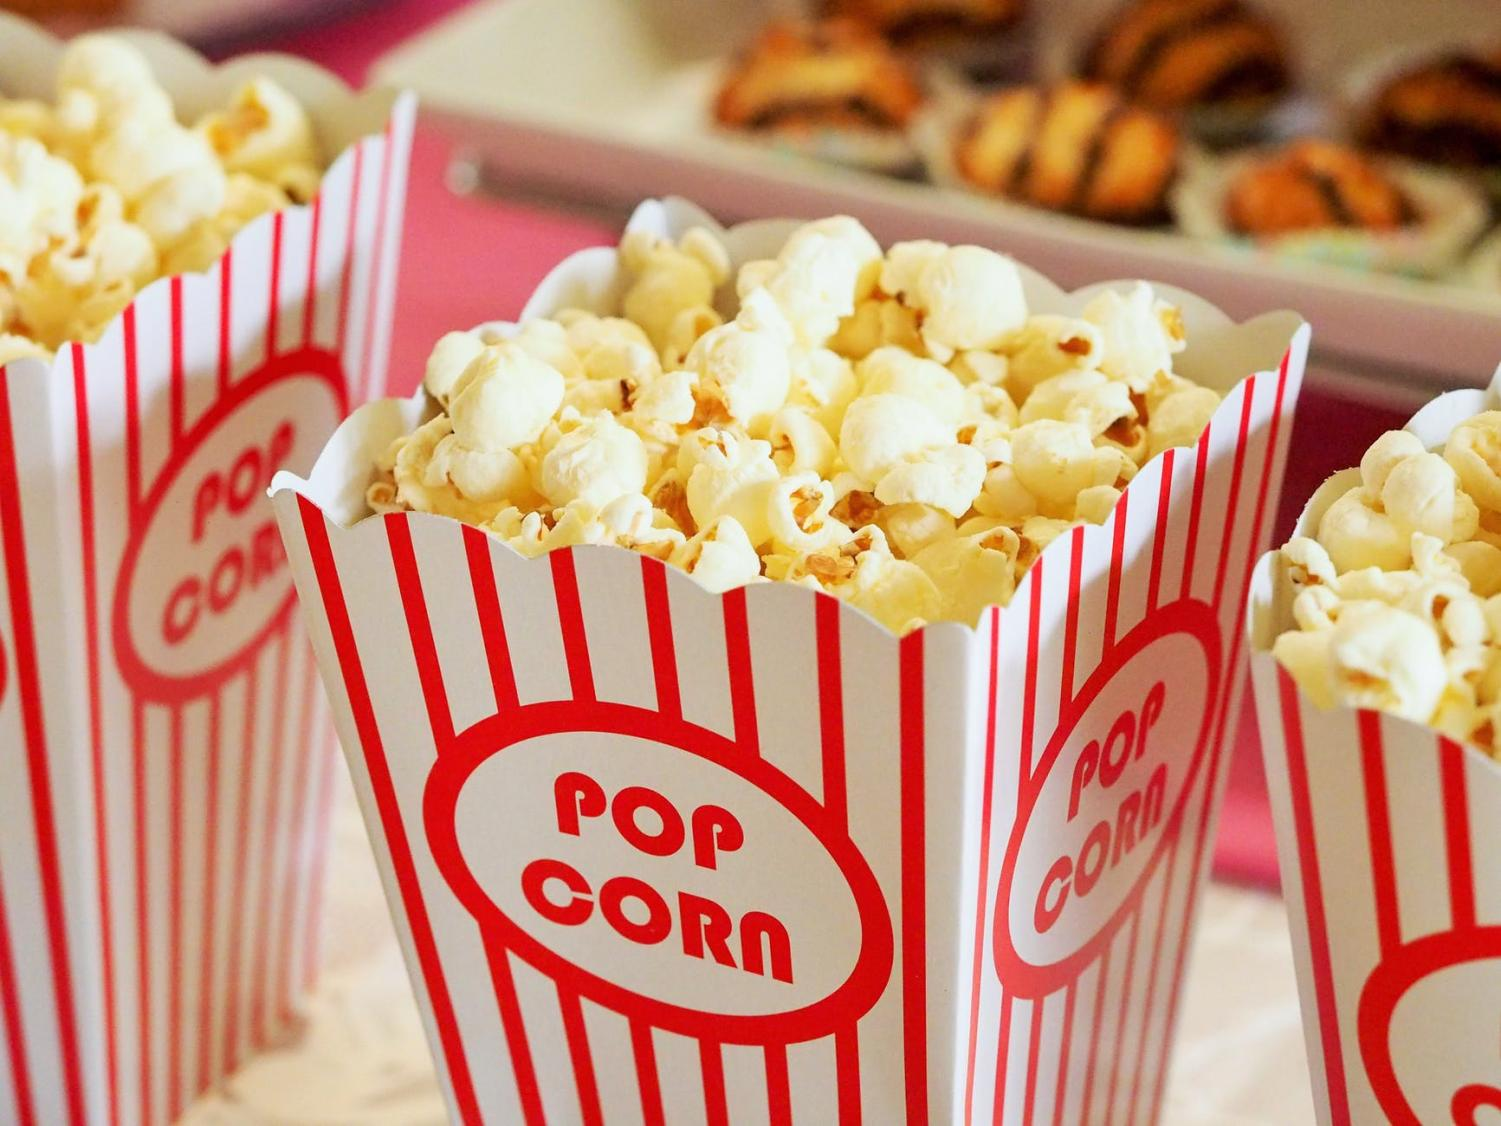 Whether you're watching at home or in theaters, popcorn is always the premier movie snack choice.